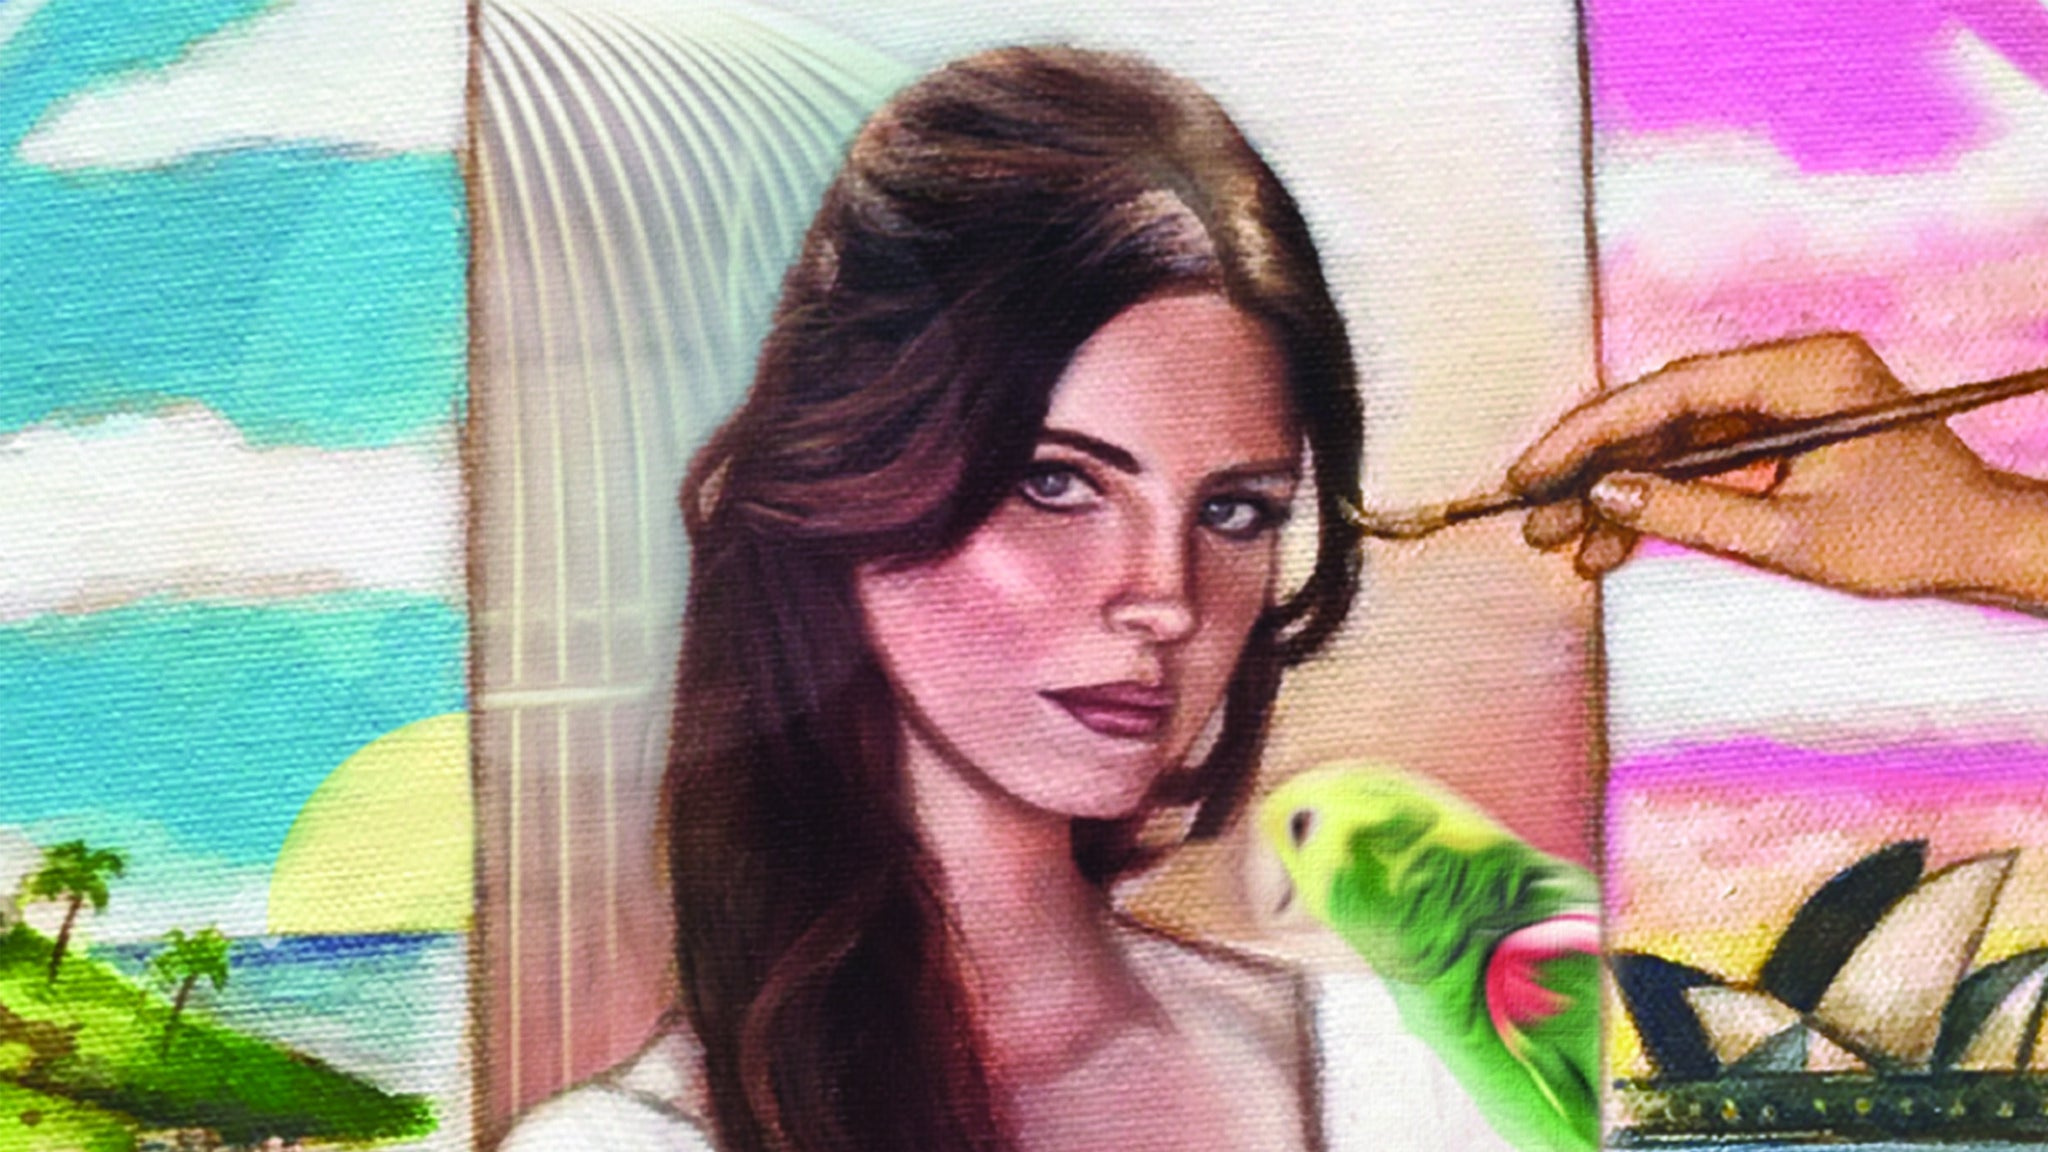 Lana Del Rey: The Norman F-cking Rockwell Tour